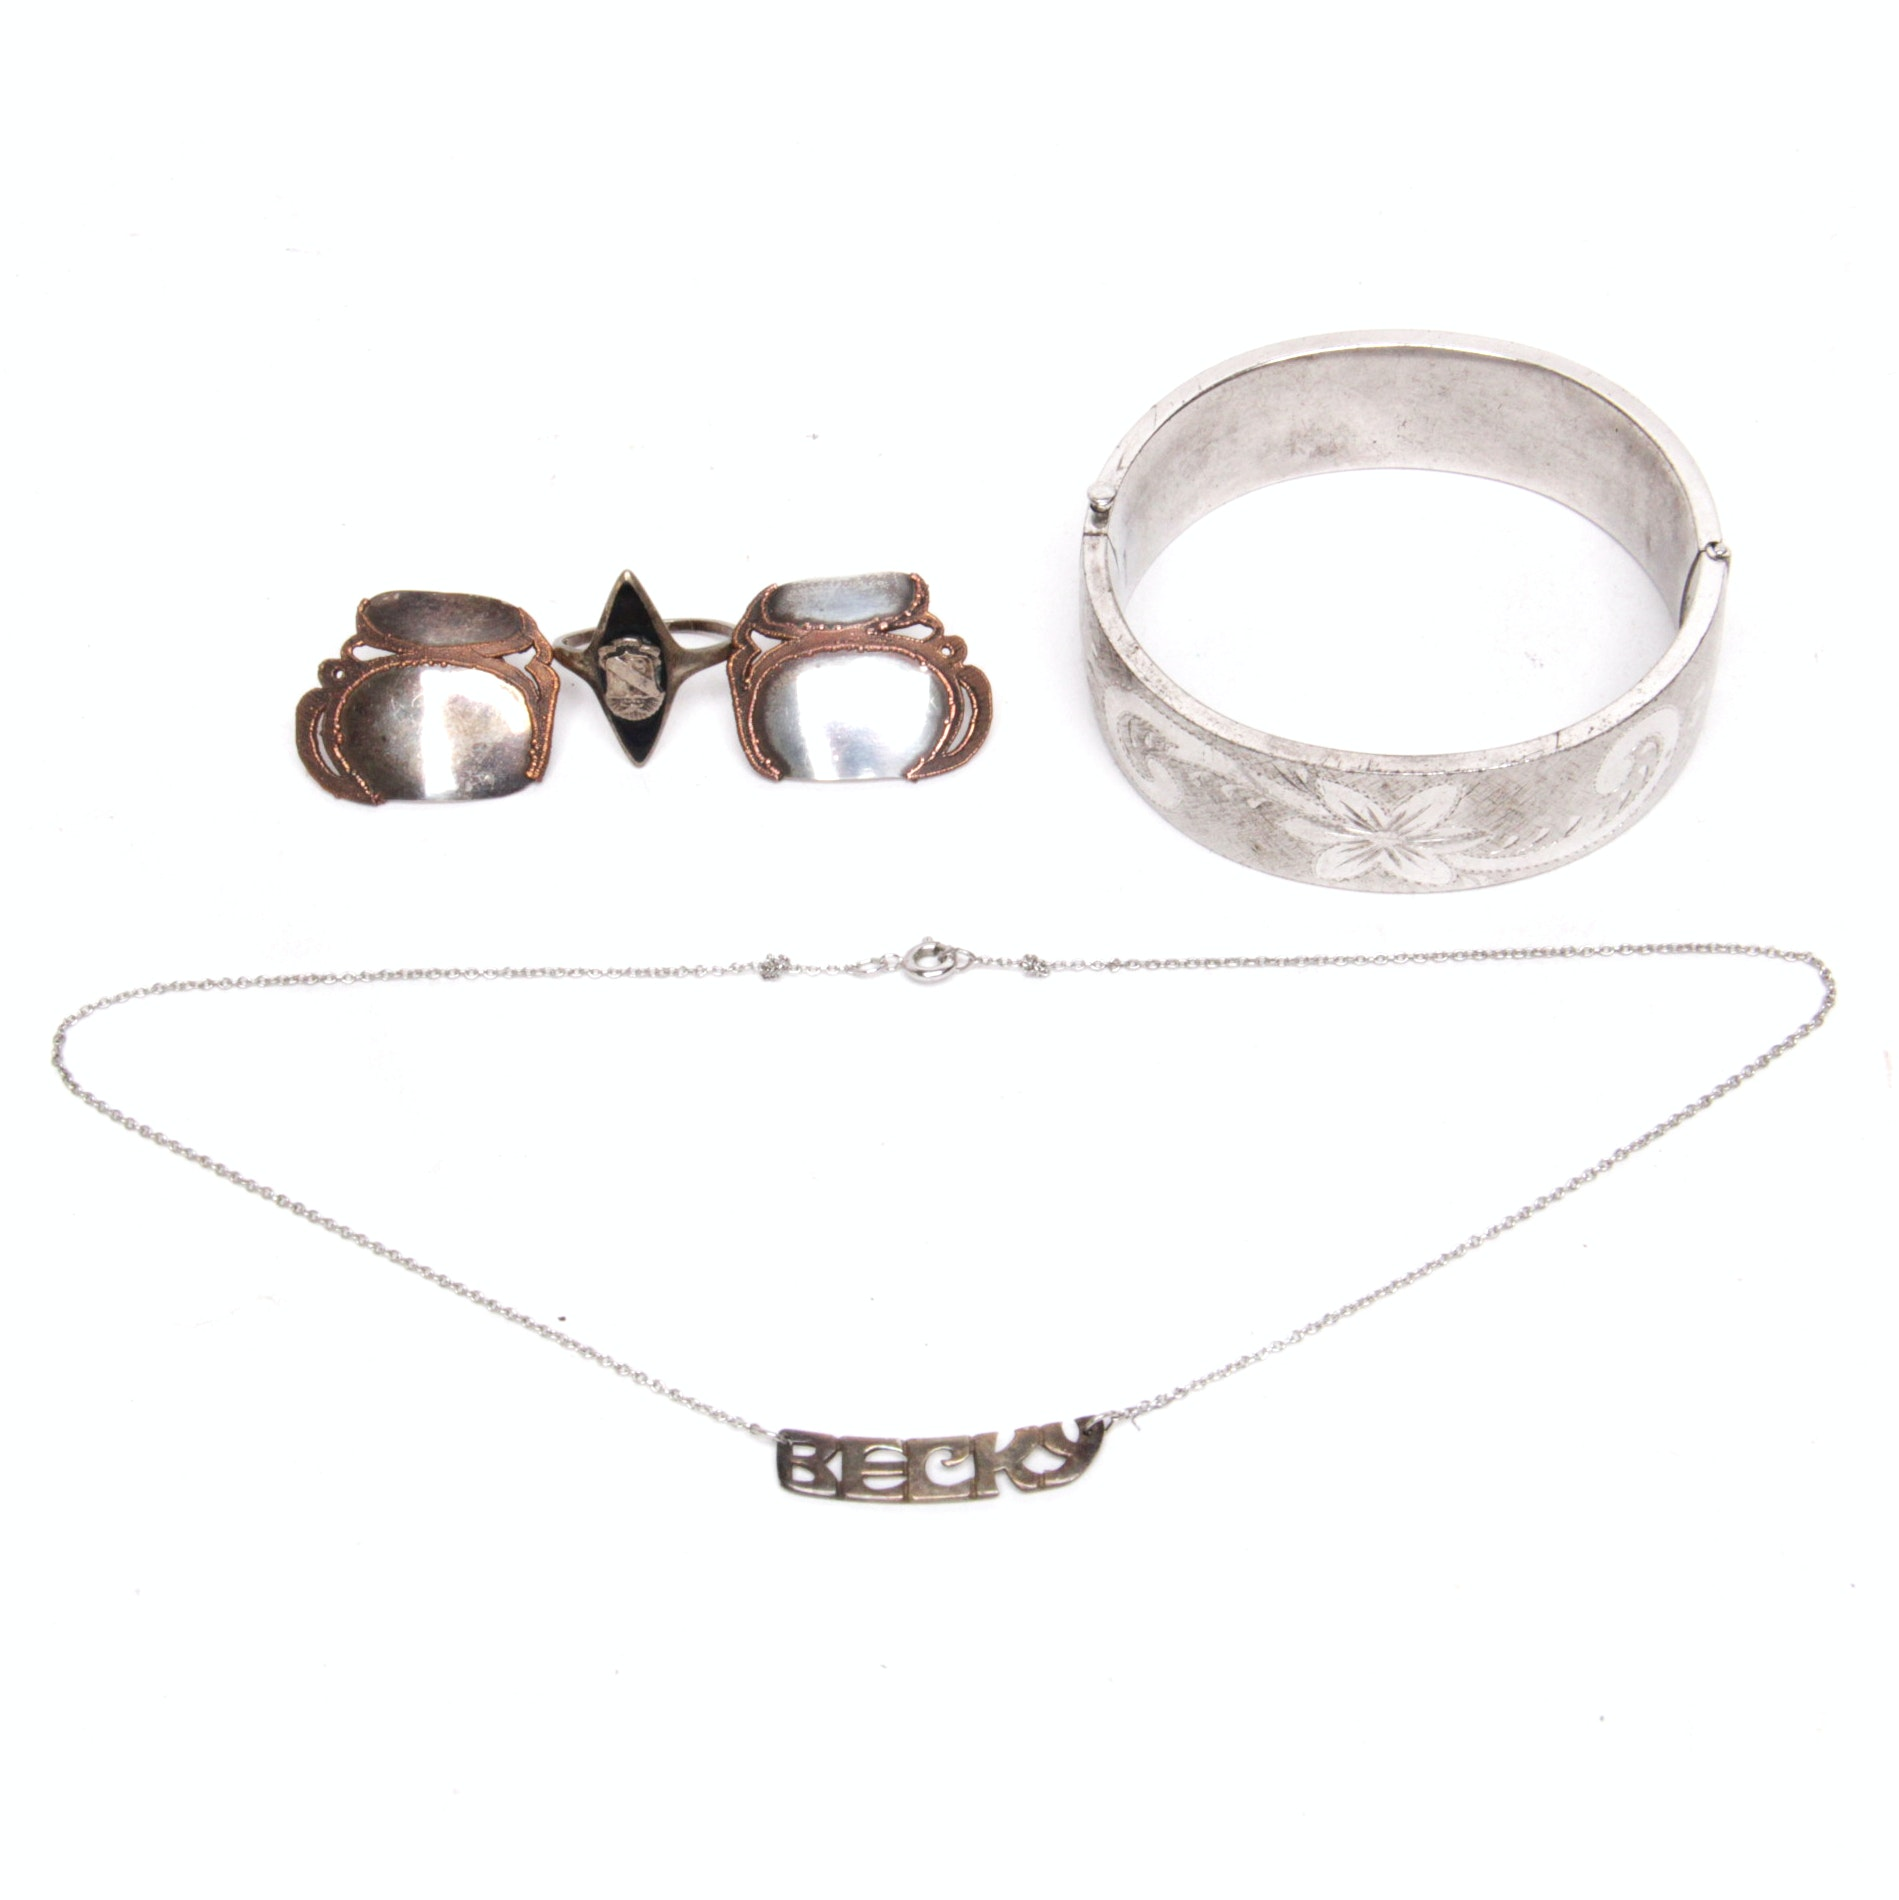 Sterling Silver Jewelry Including a Floral Cuff Bracelet